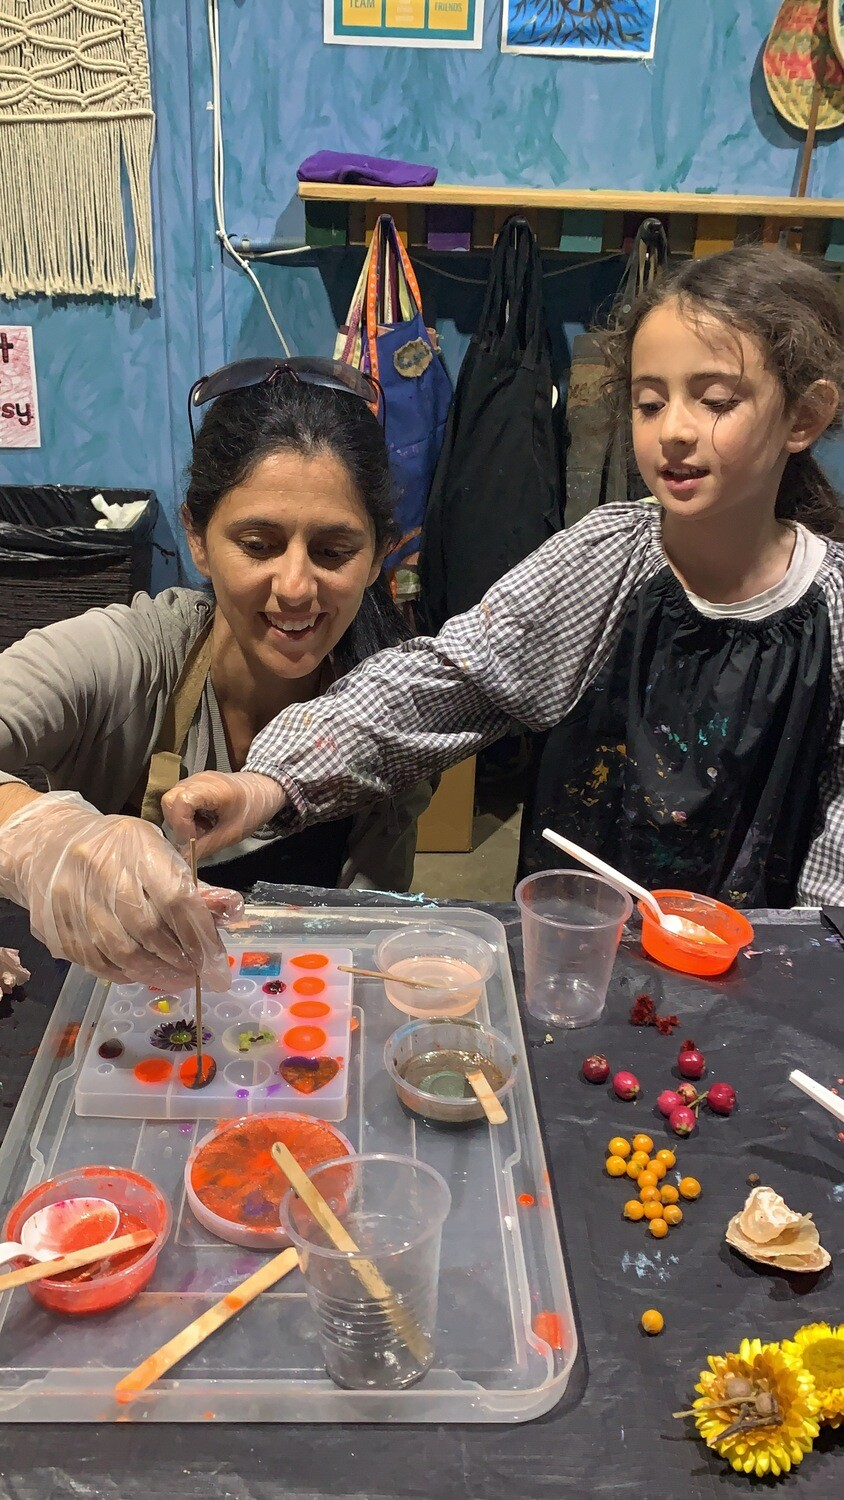 Parent & Child Resin jewellery workshop - Saturday 12 Sept, 11am - 12.30pm